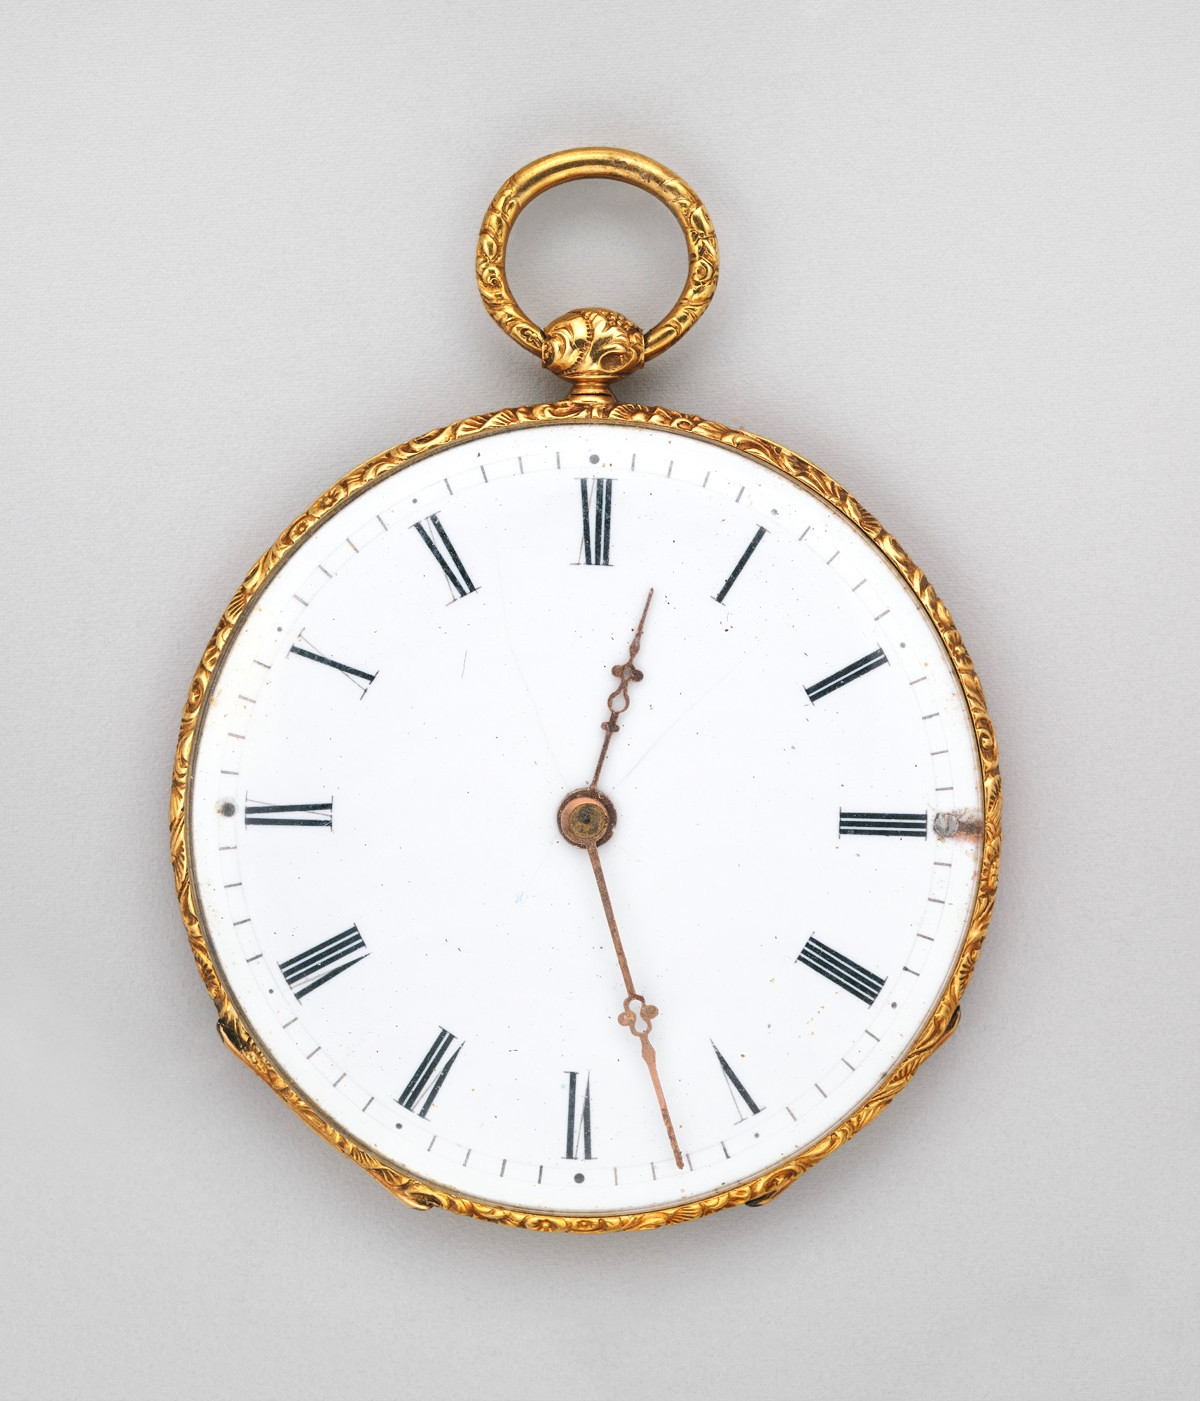 1830. Watch. Swiss, Geneva. Gold, enamel. metmuseum